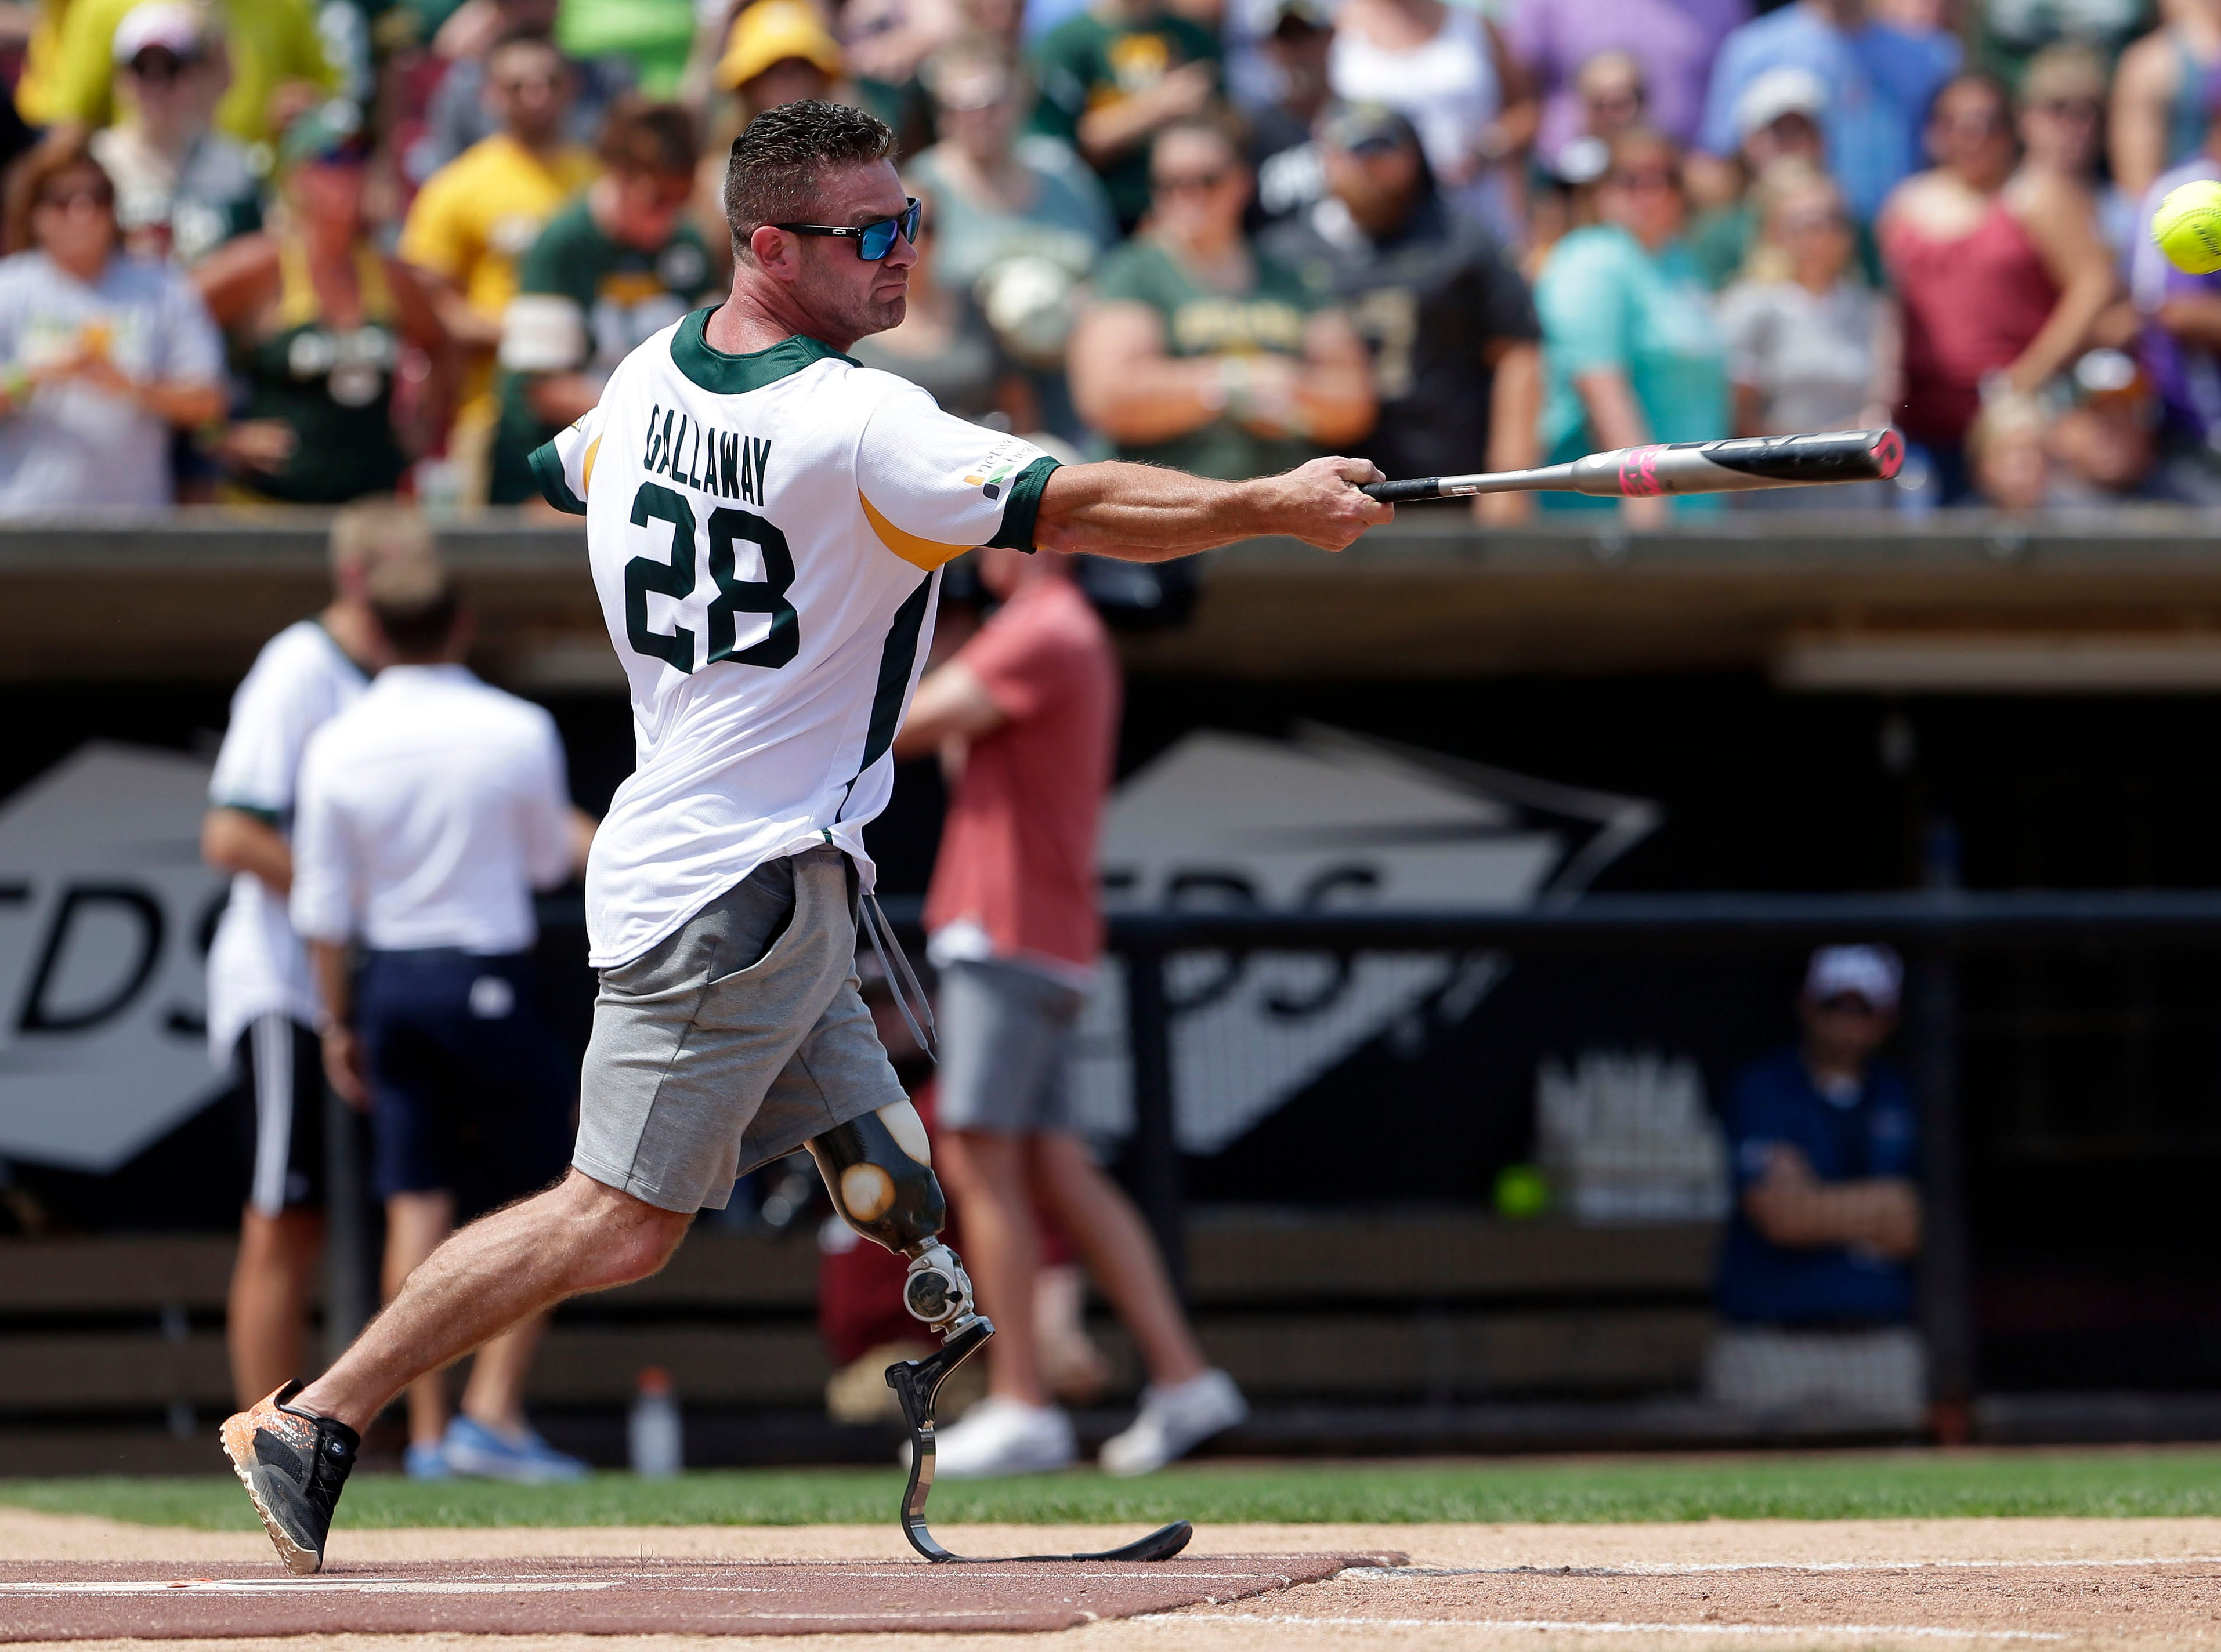 Noah Galloway bats as Donald Driver and a few of his friends gather for a charity softball game Sunday, August 5, 2018, at Neuroscience Group Field at Fox Cities Stadium in Grand Chute, Wis.